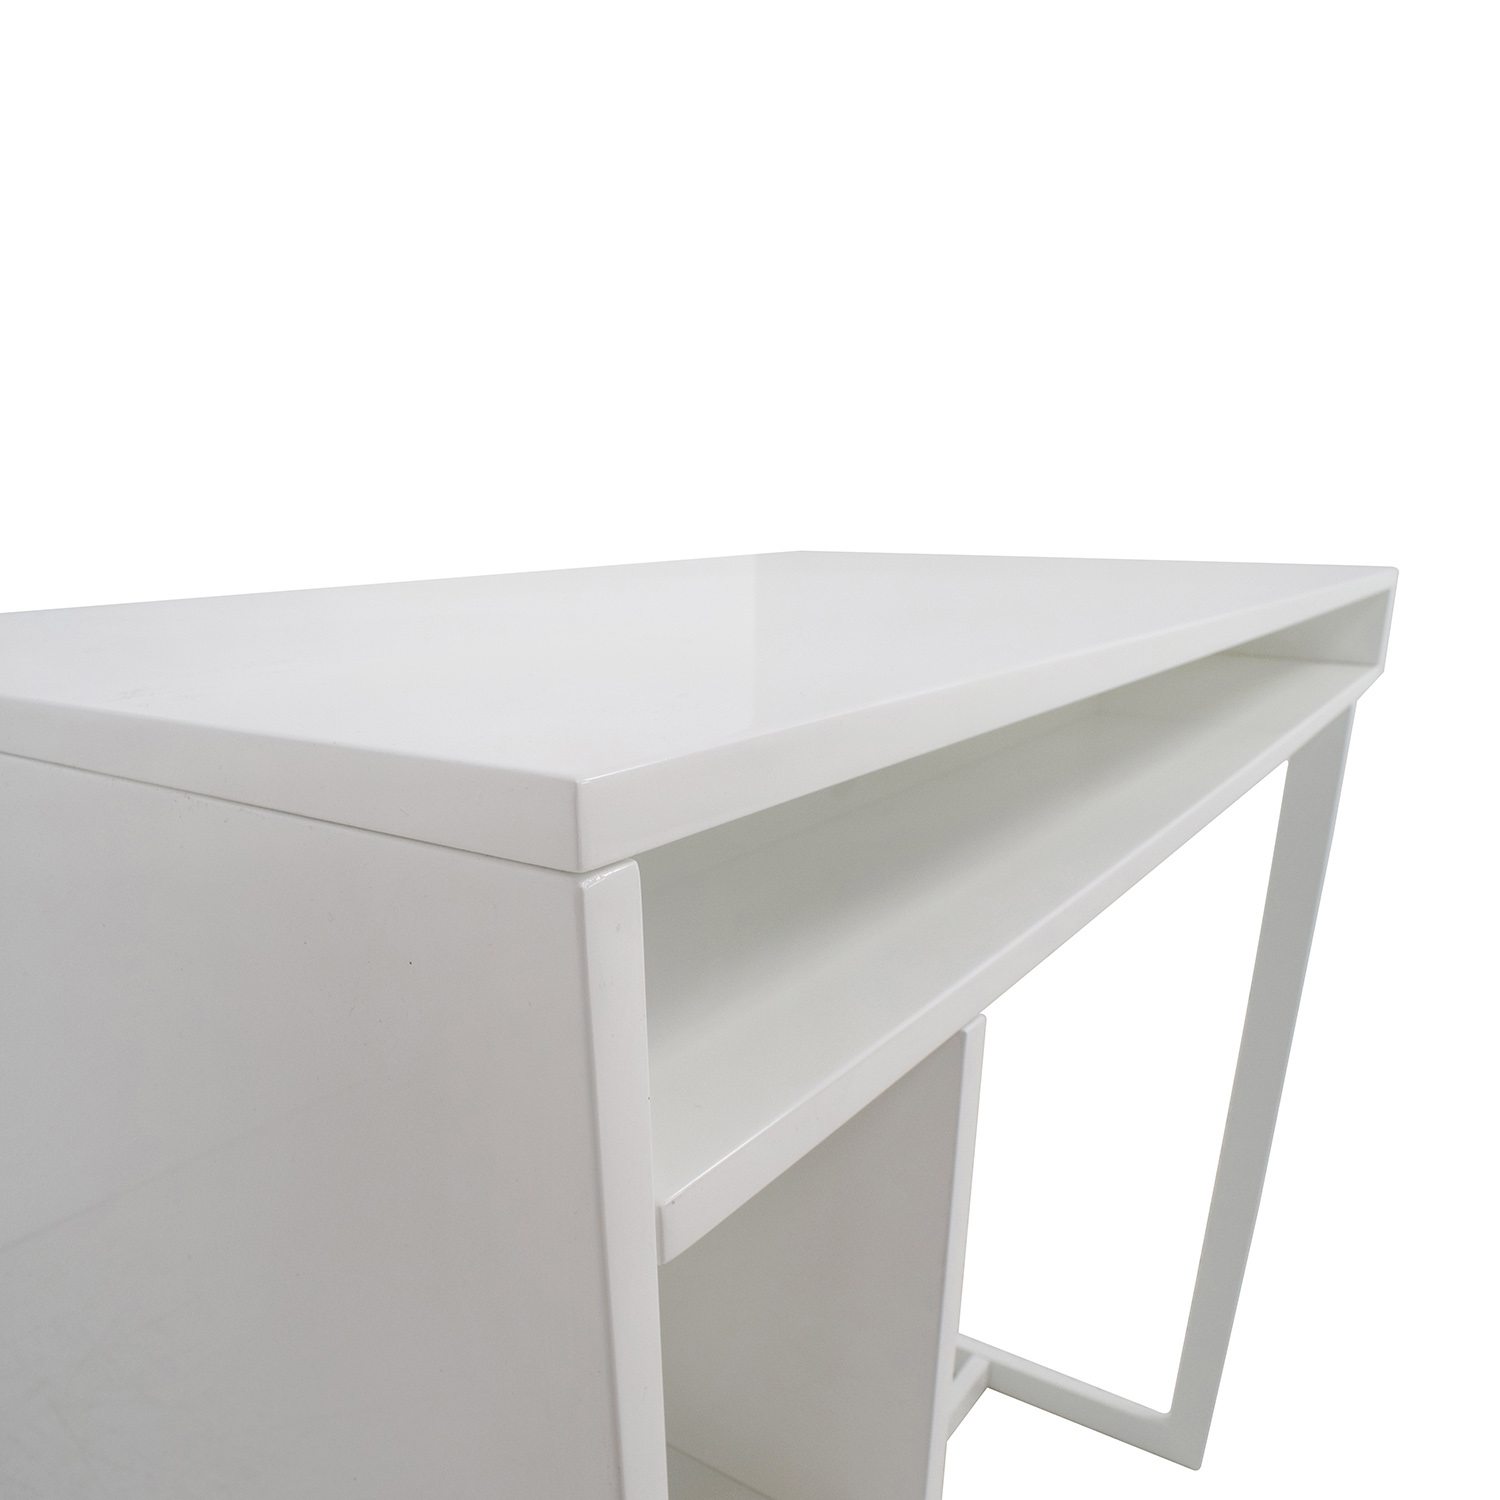 44% OFF CB2 CB2 White High Dining Table with Storage Tables